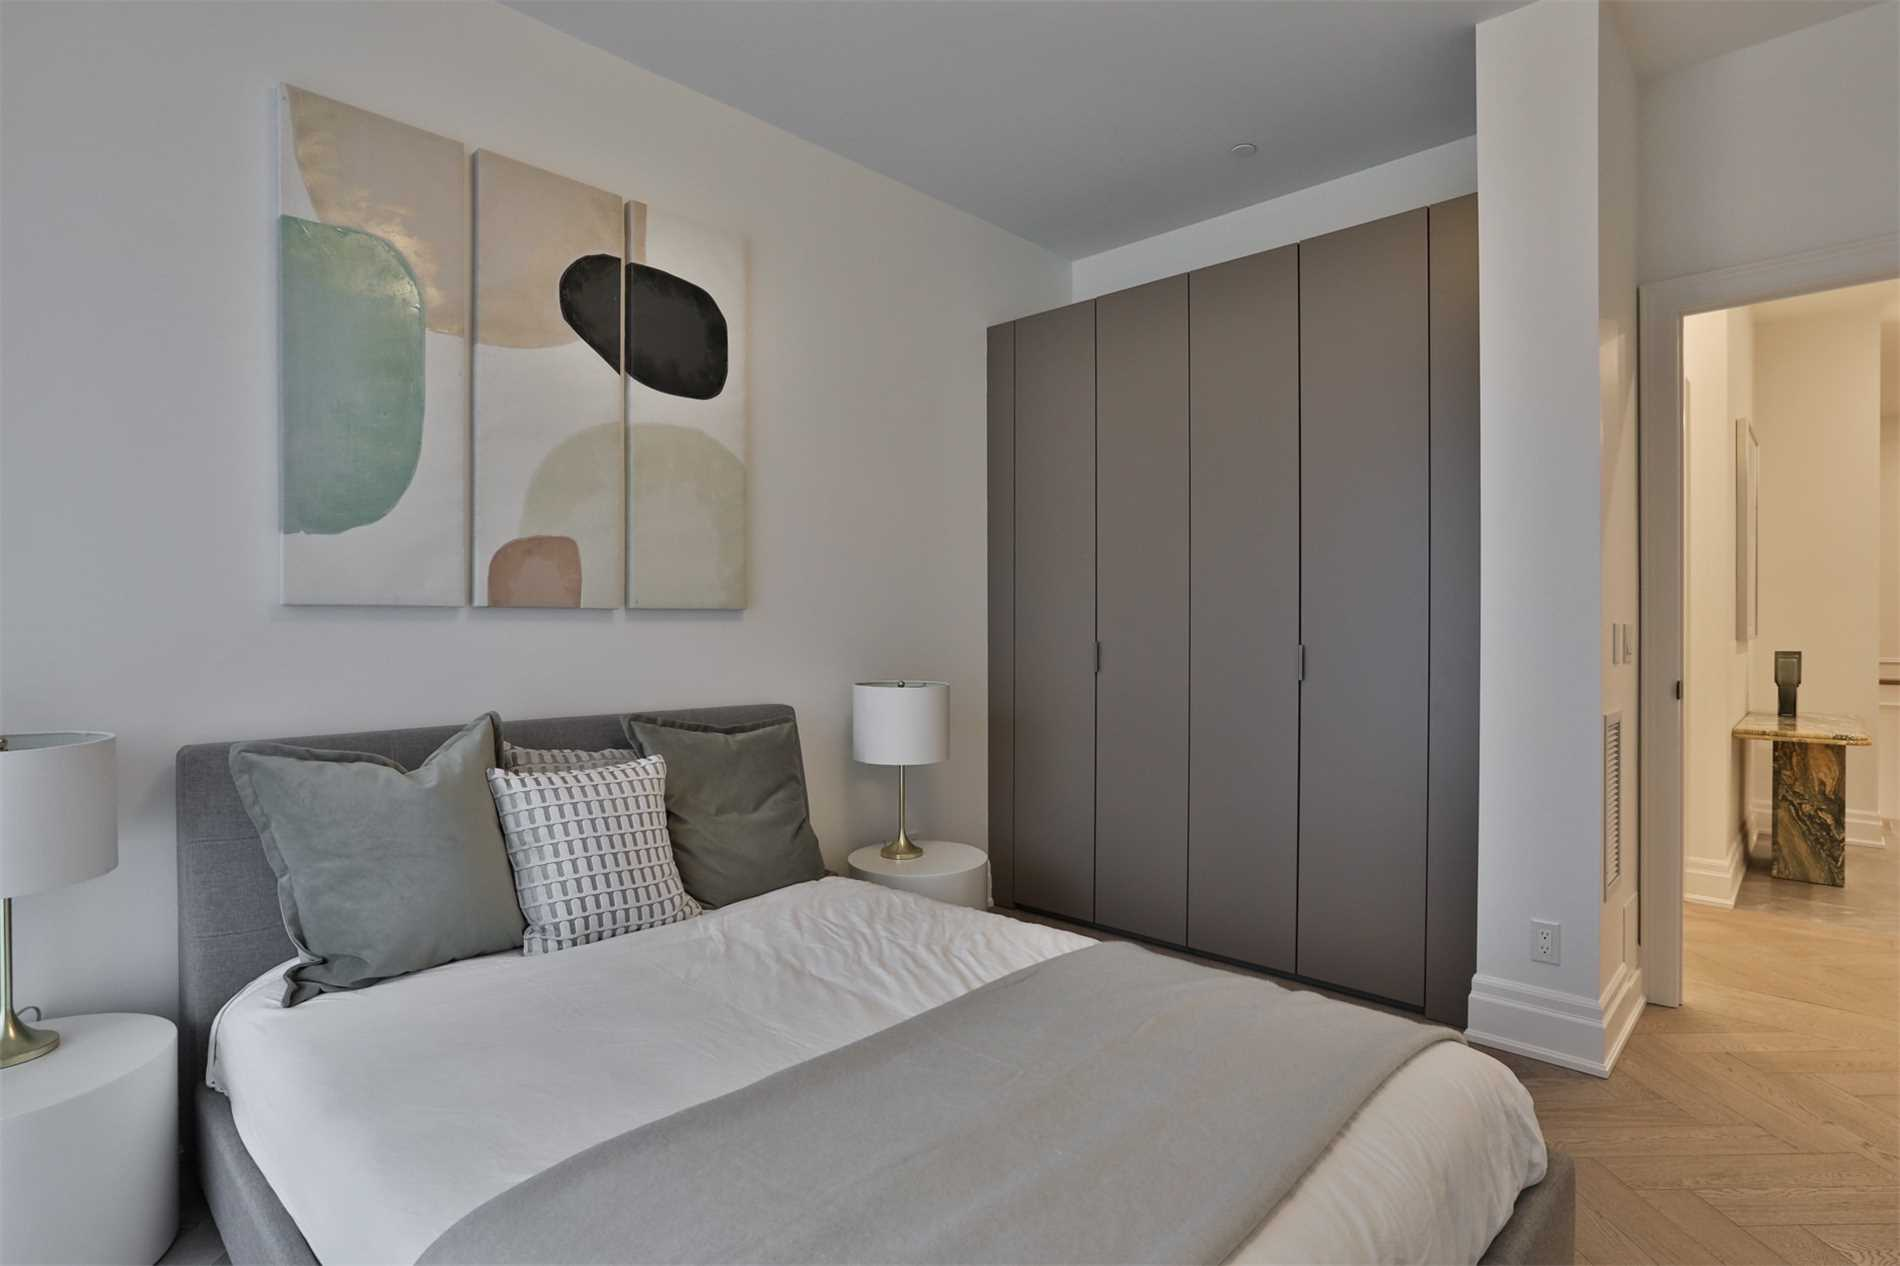 Condo Townhouse For Sale In Toronto , 3 Bedrooms Bedrooms, ,3 BathroomsBathrooms,Condo Townhouse,For Sale,Th1,Pears